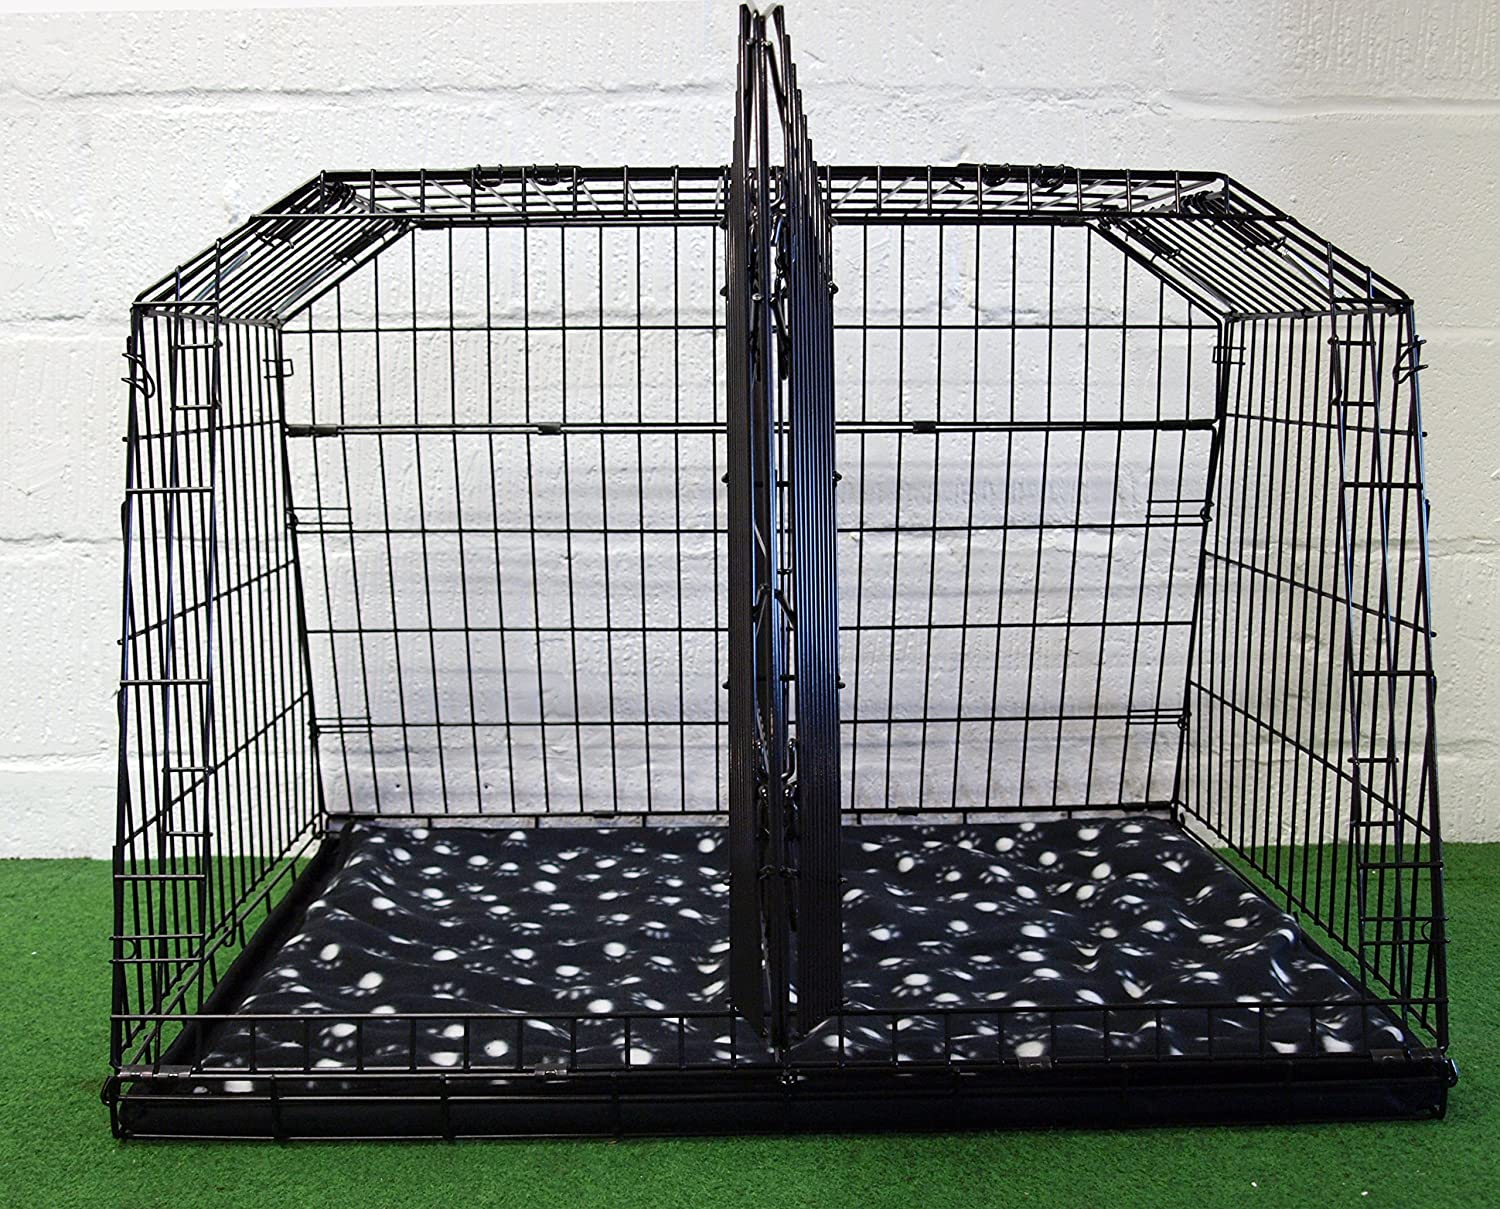 Arrow ESTATE 4x4 38 SLOPED CAR DOG CAGE TRAVEL CRATE PUPPY BOOT GUARD CAGES est38xl